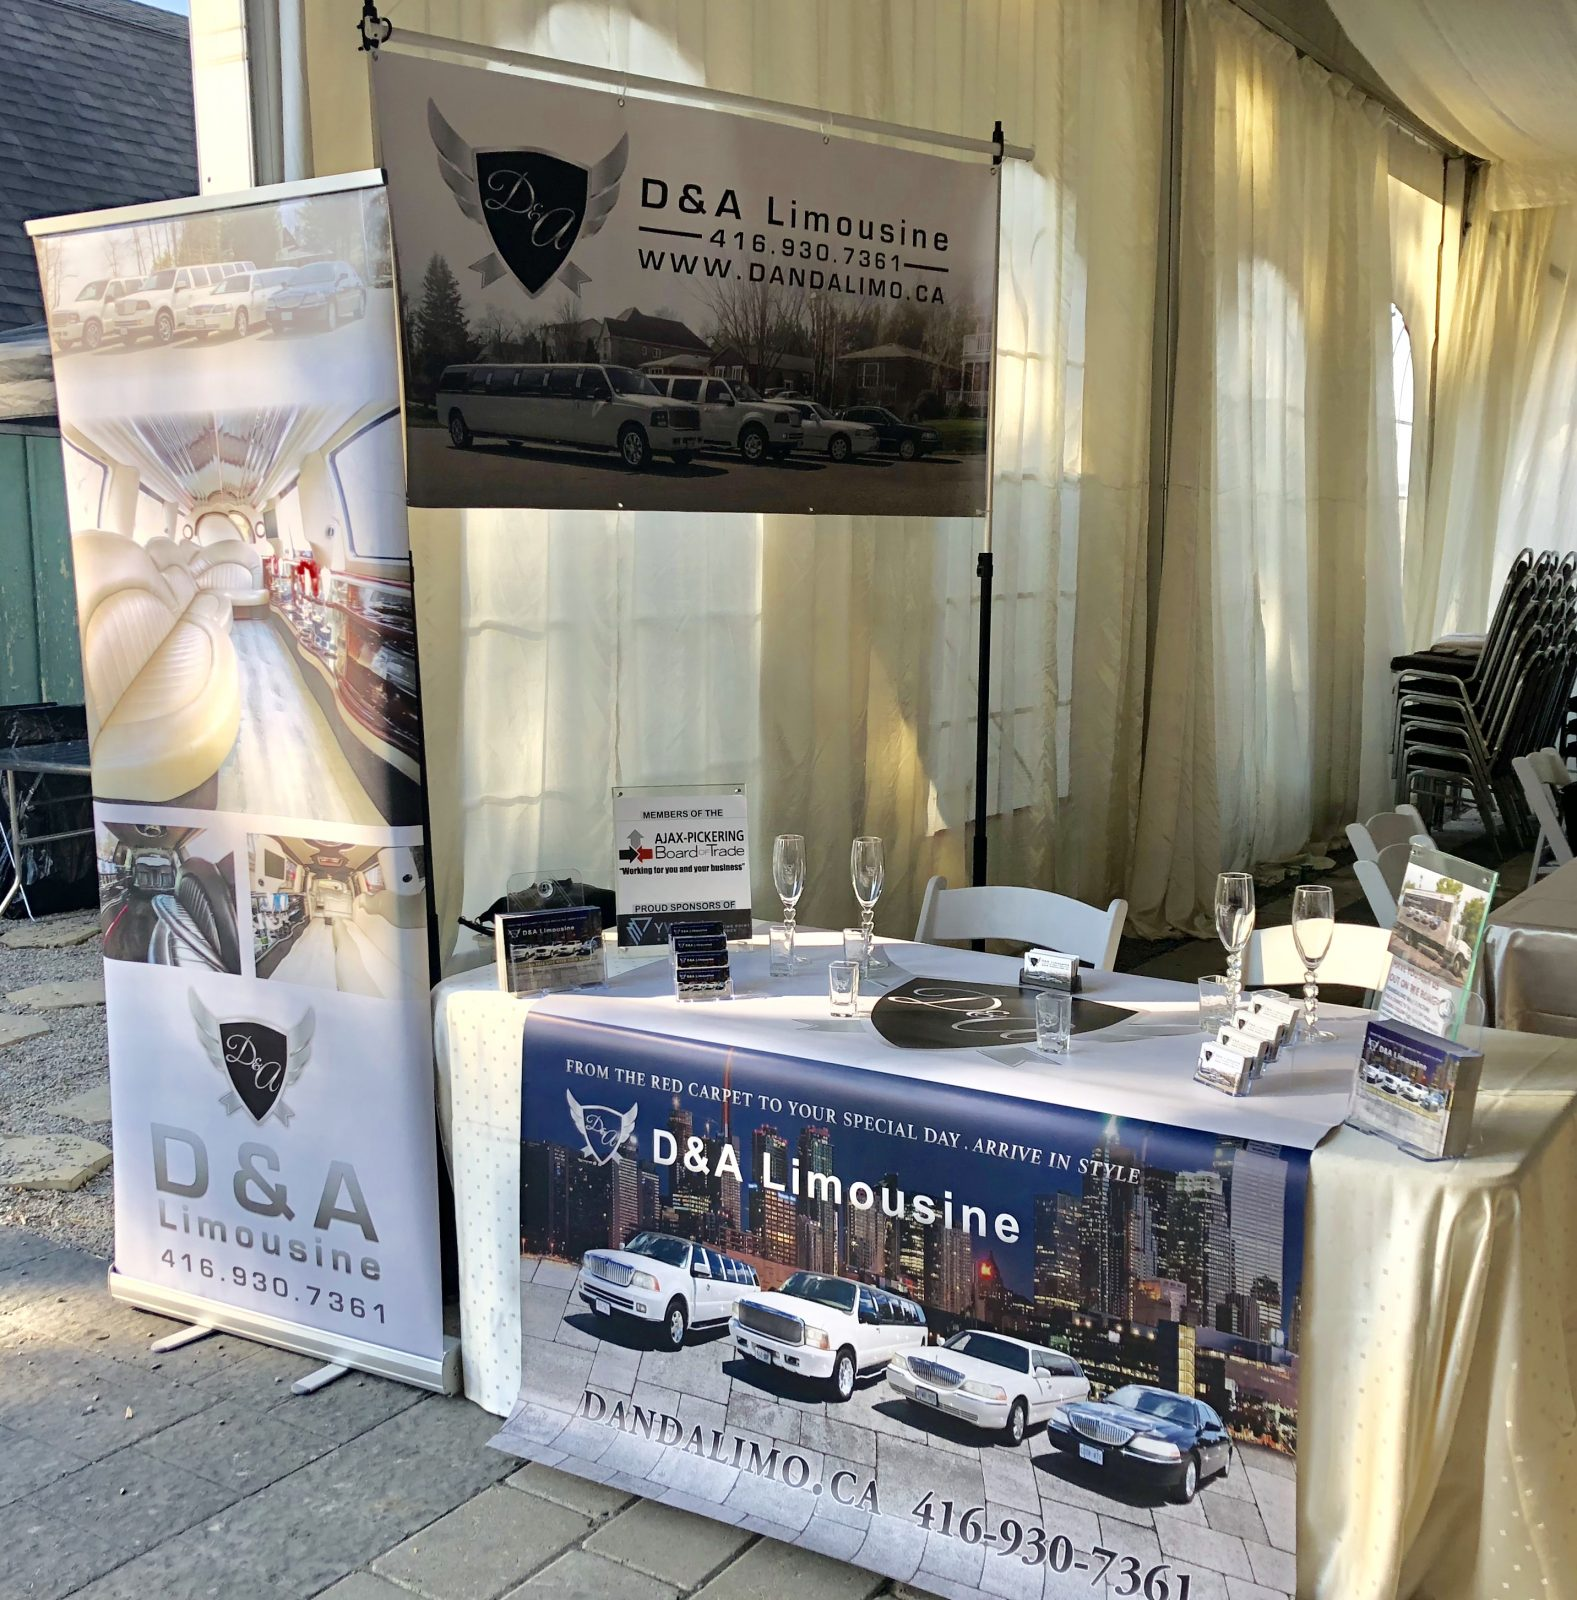 An image showing the D & A Limo booth at a Wedding Show